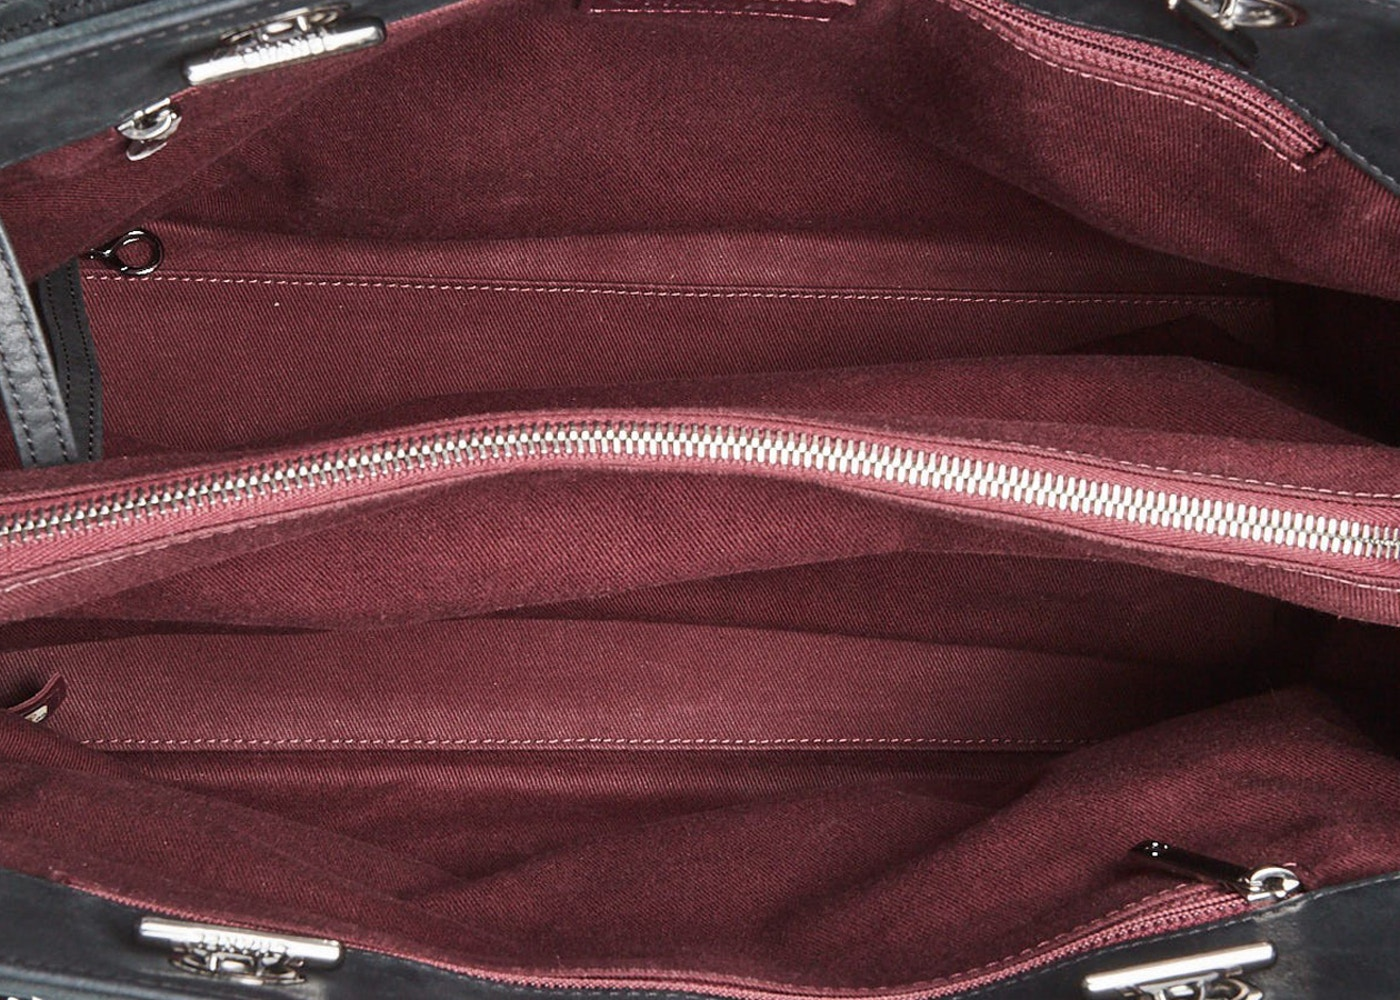 Chanel Cc Lock Tote Quilted Square Iridescent Black Red